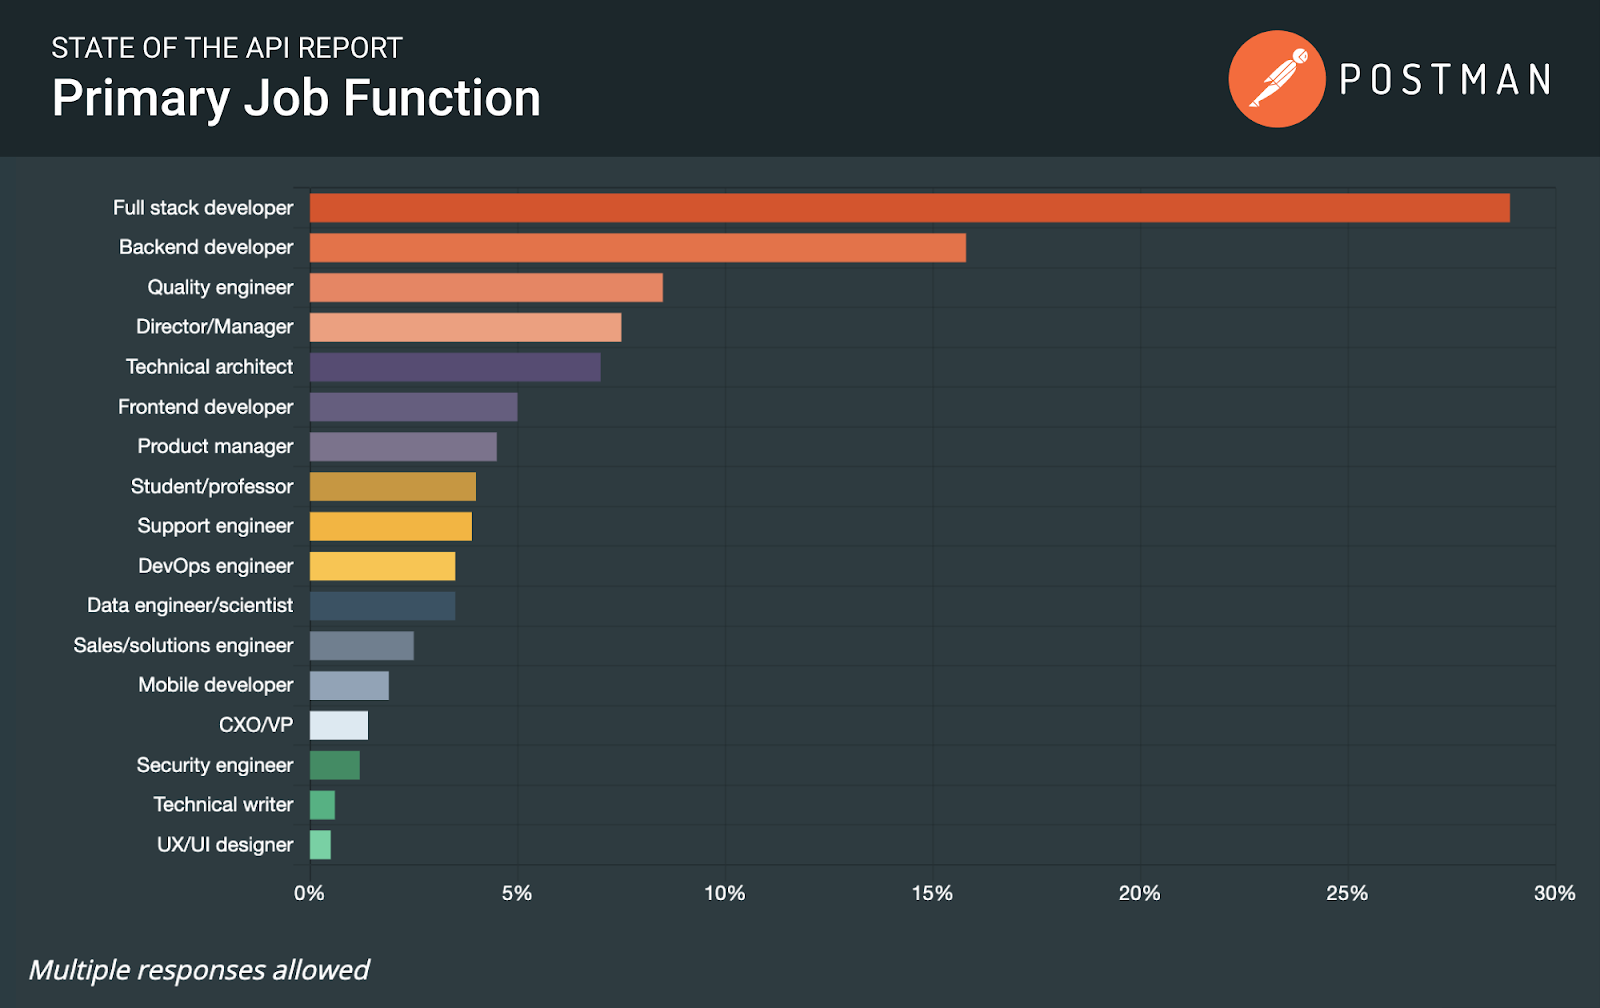 State of the art API report: primary job function